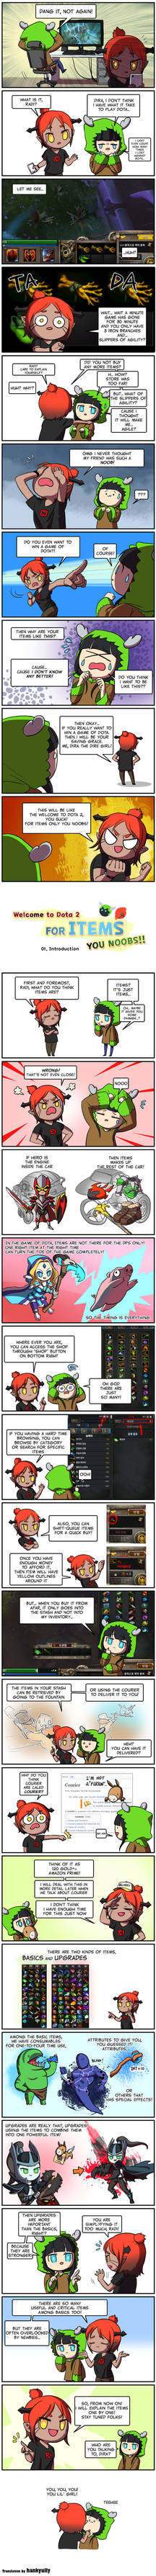 Welcome to Dota 2 for ITEMS, you NOOB! - 01